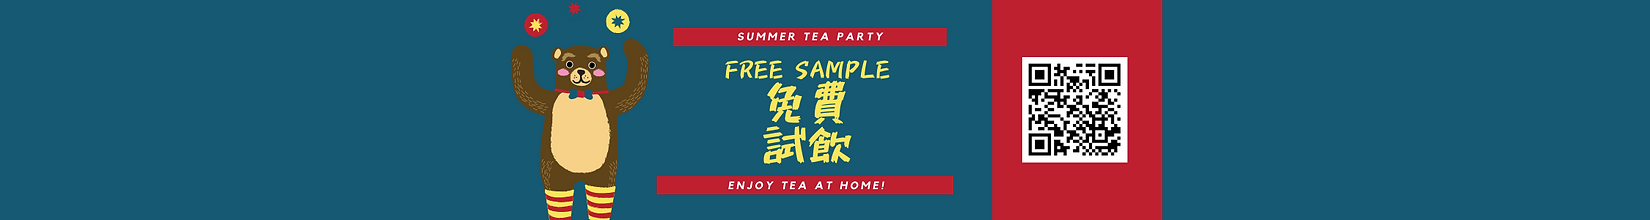 Summer TEA PARTY 副本 (4).png